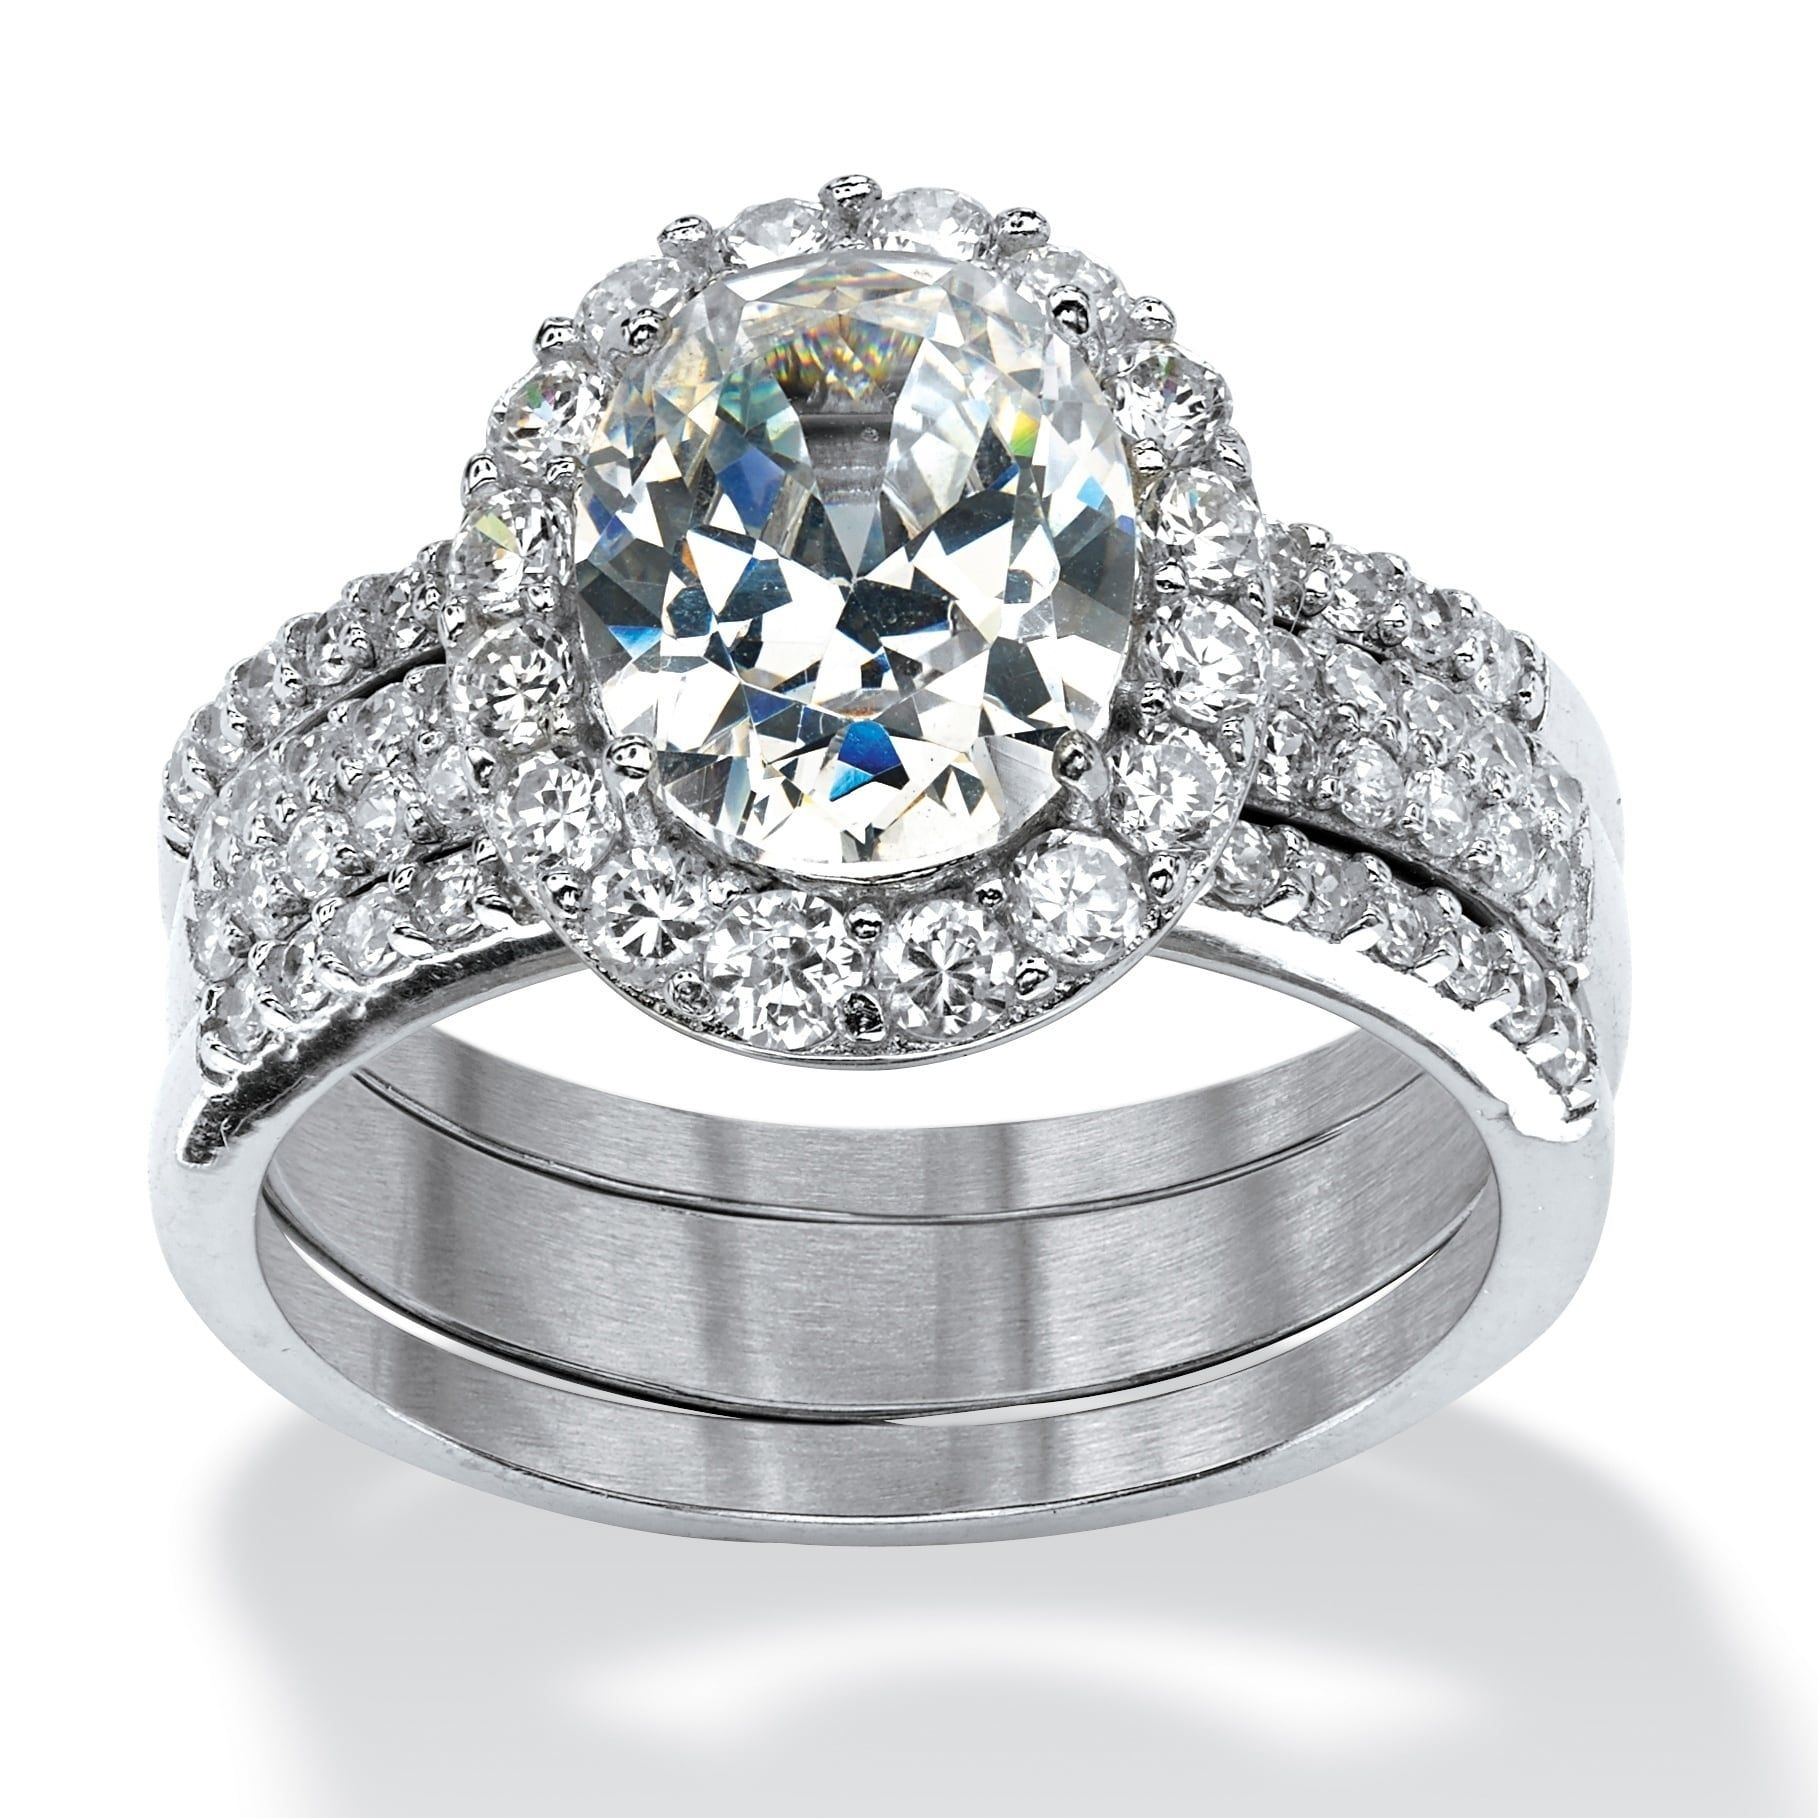 Platinum over Sterling Silver Cubic Zirconia Halo 3Piece